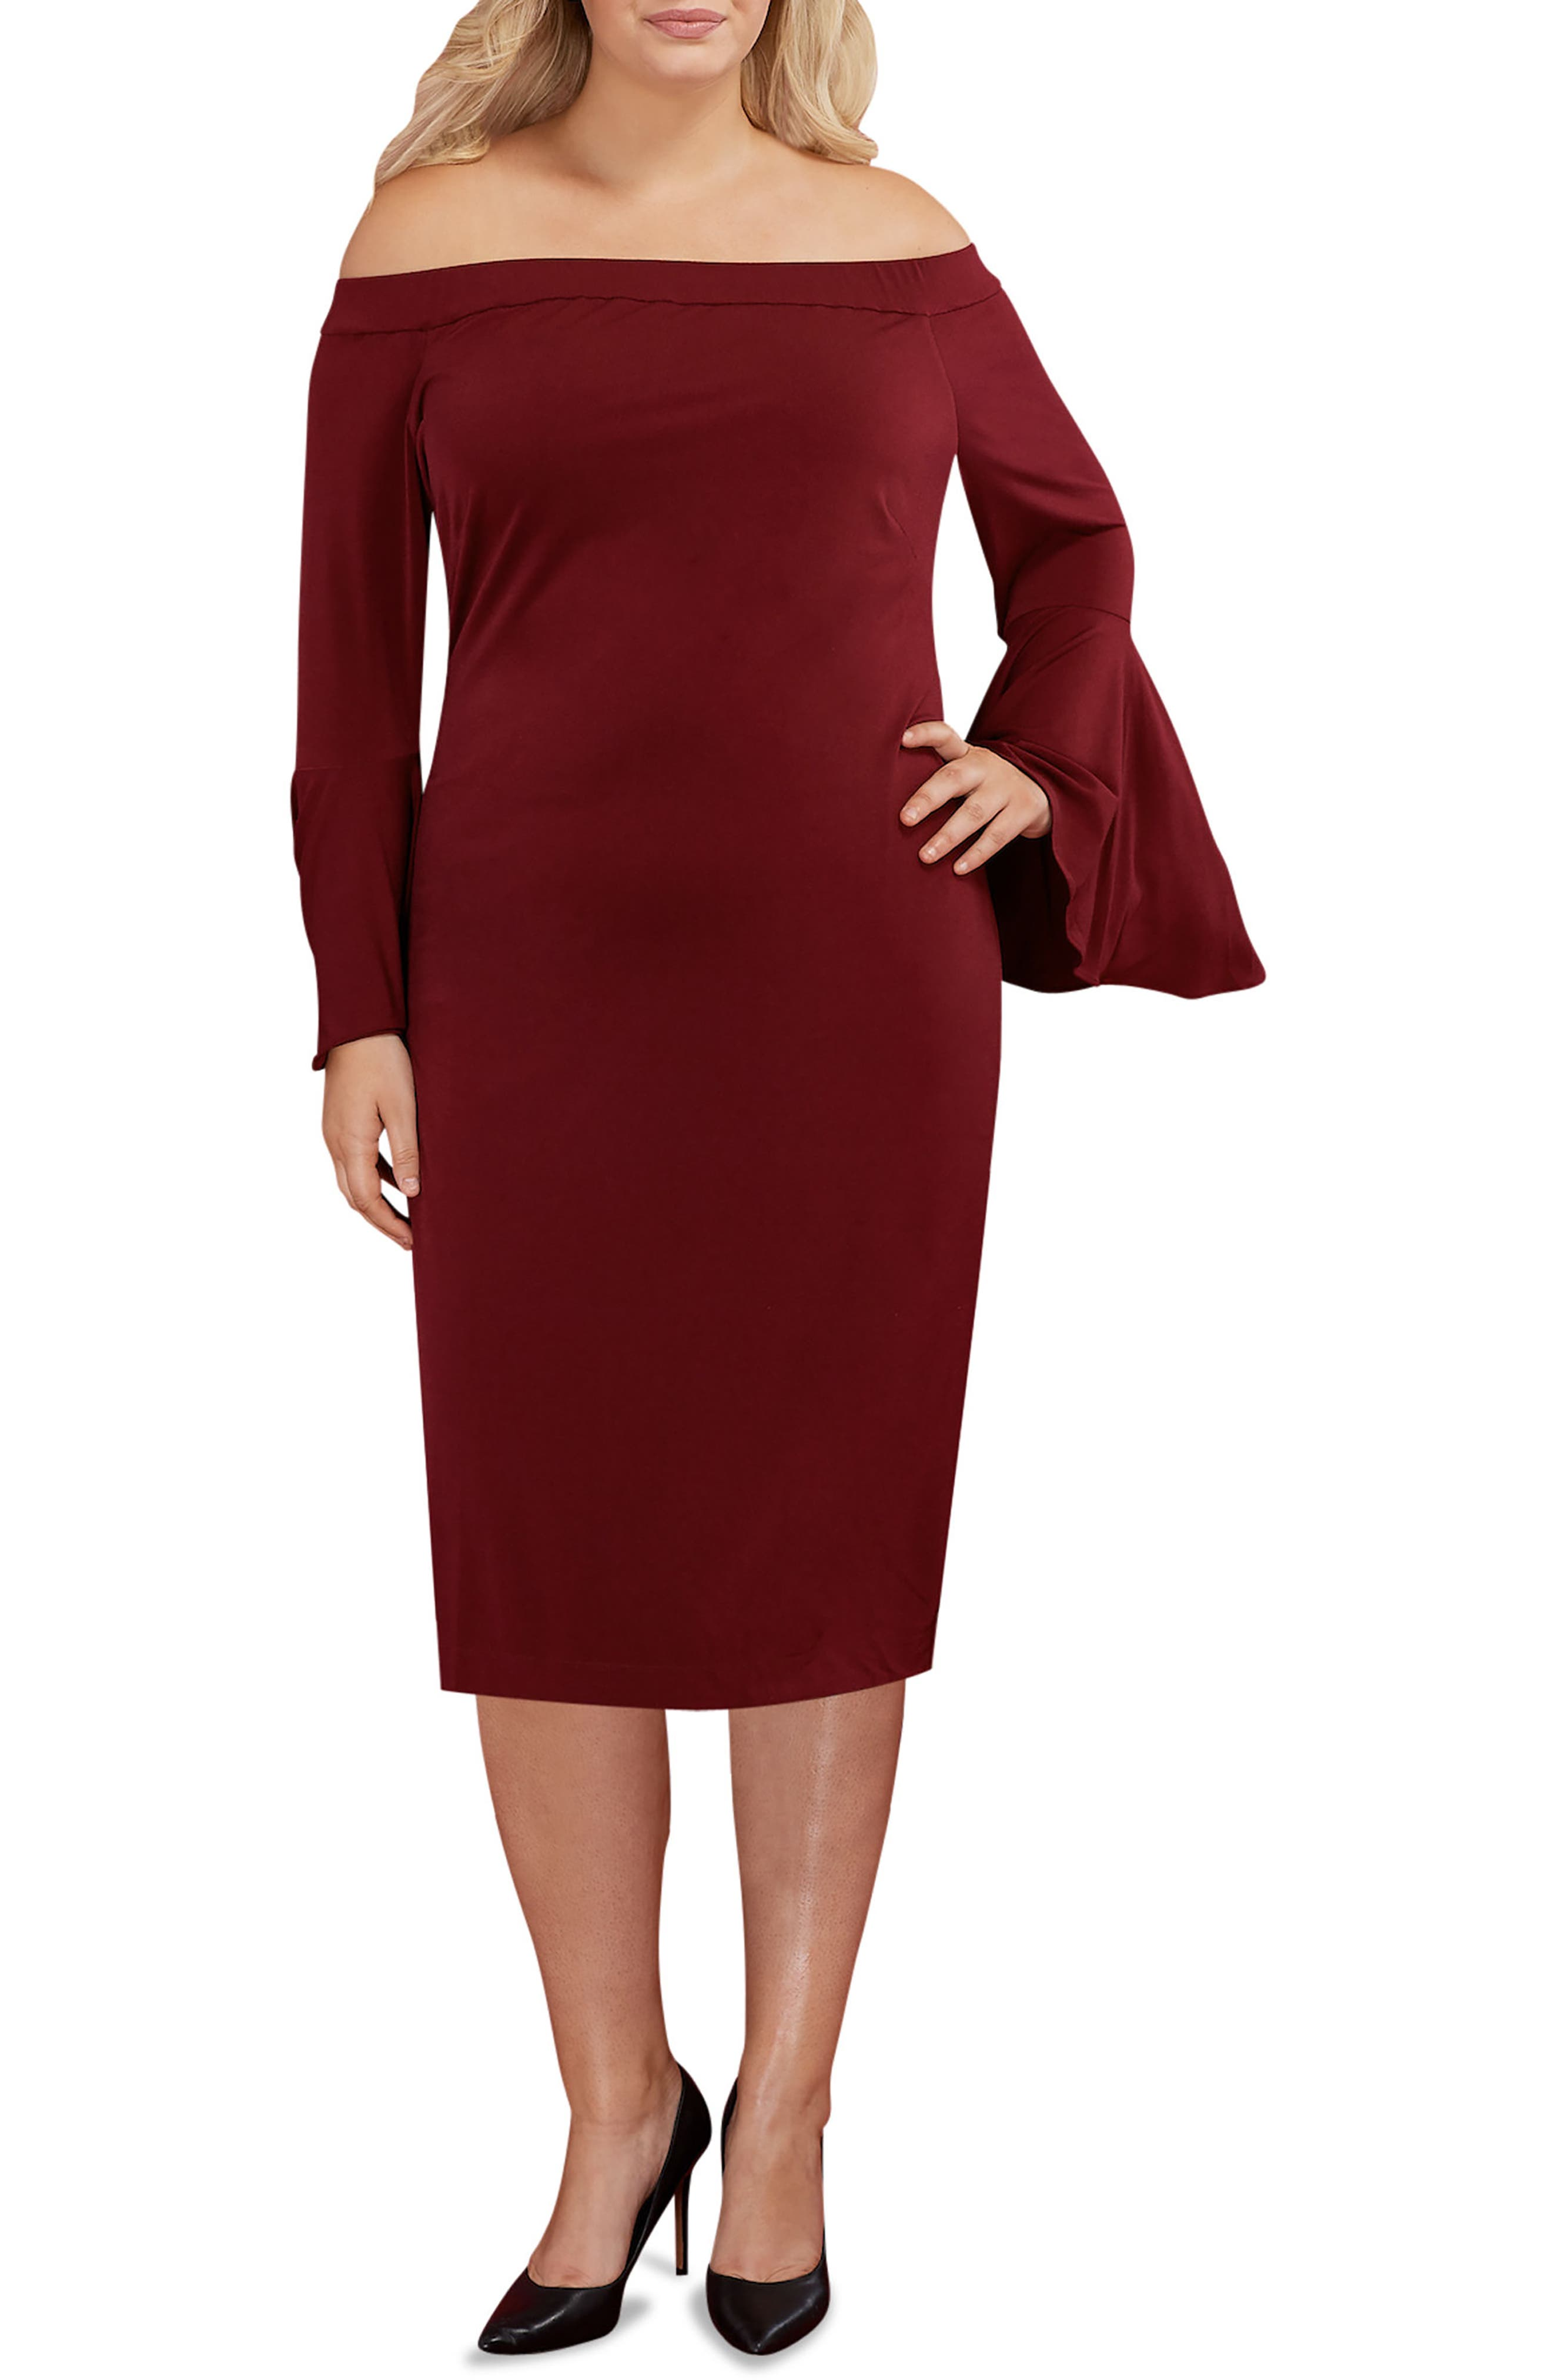 Off the Shoulder Bell Sleeve Sheath Dress,                             Main thumbnail 1, color,                             Wine